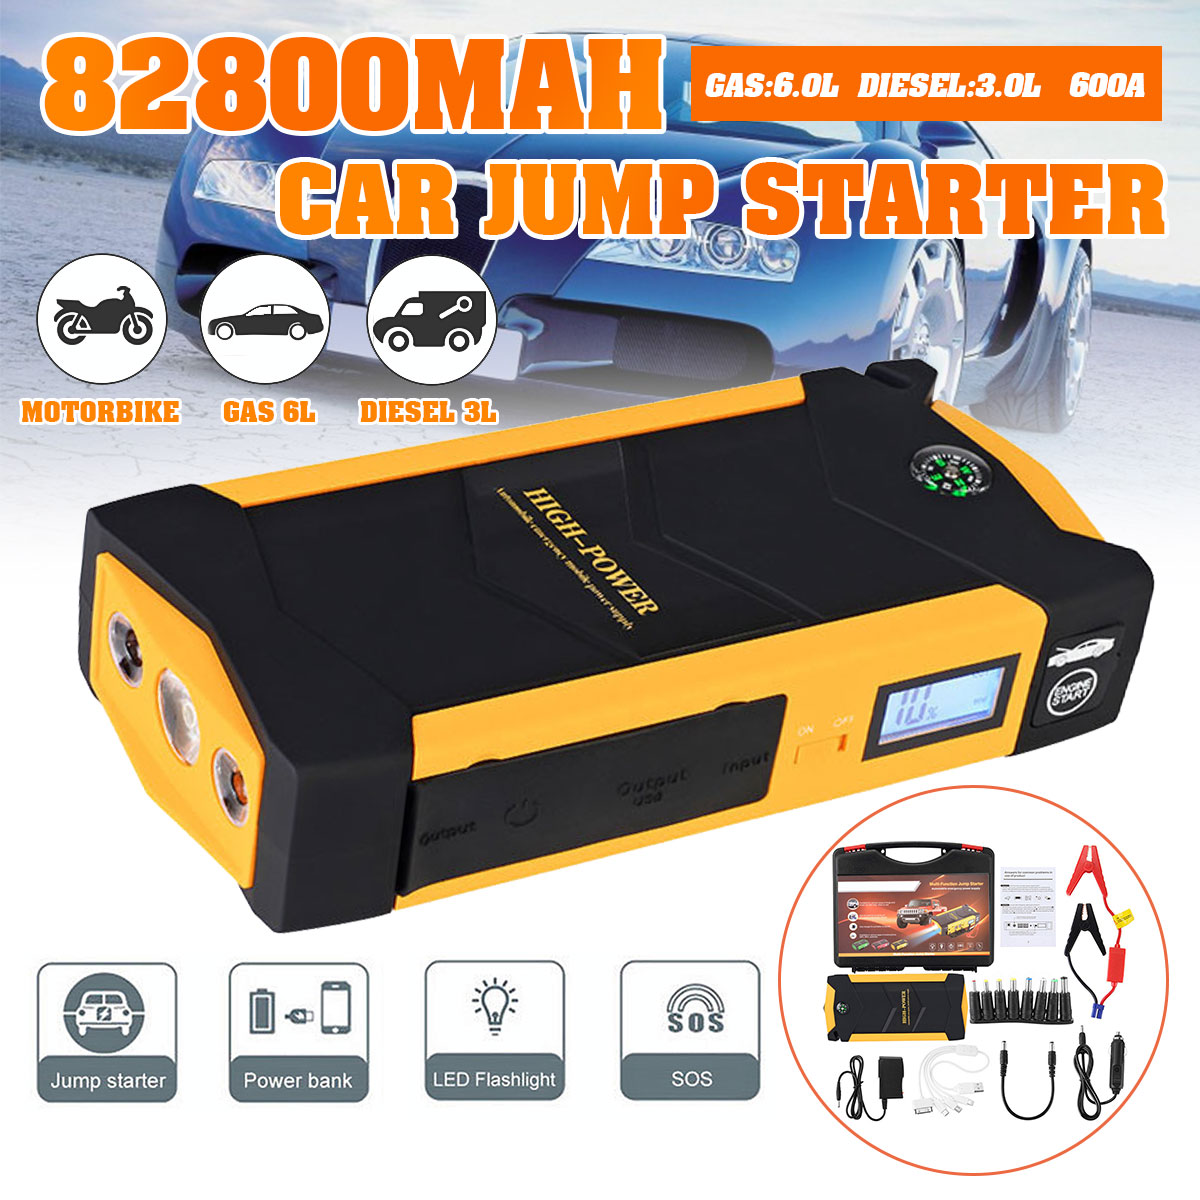 Charger Car-Starter Power-Bank Petrol-Diesel 82800mah-Car Portable 12V 600A Ce title=